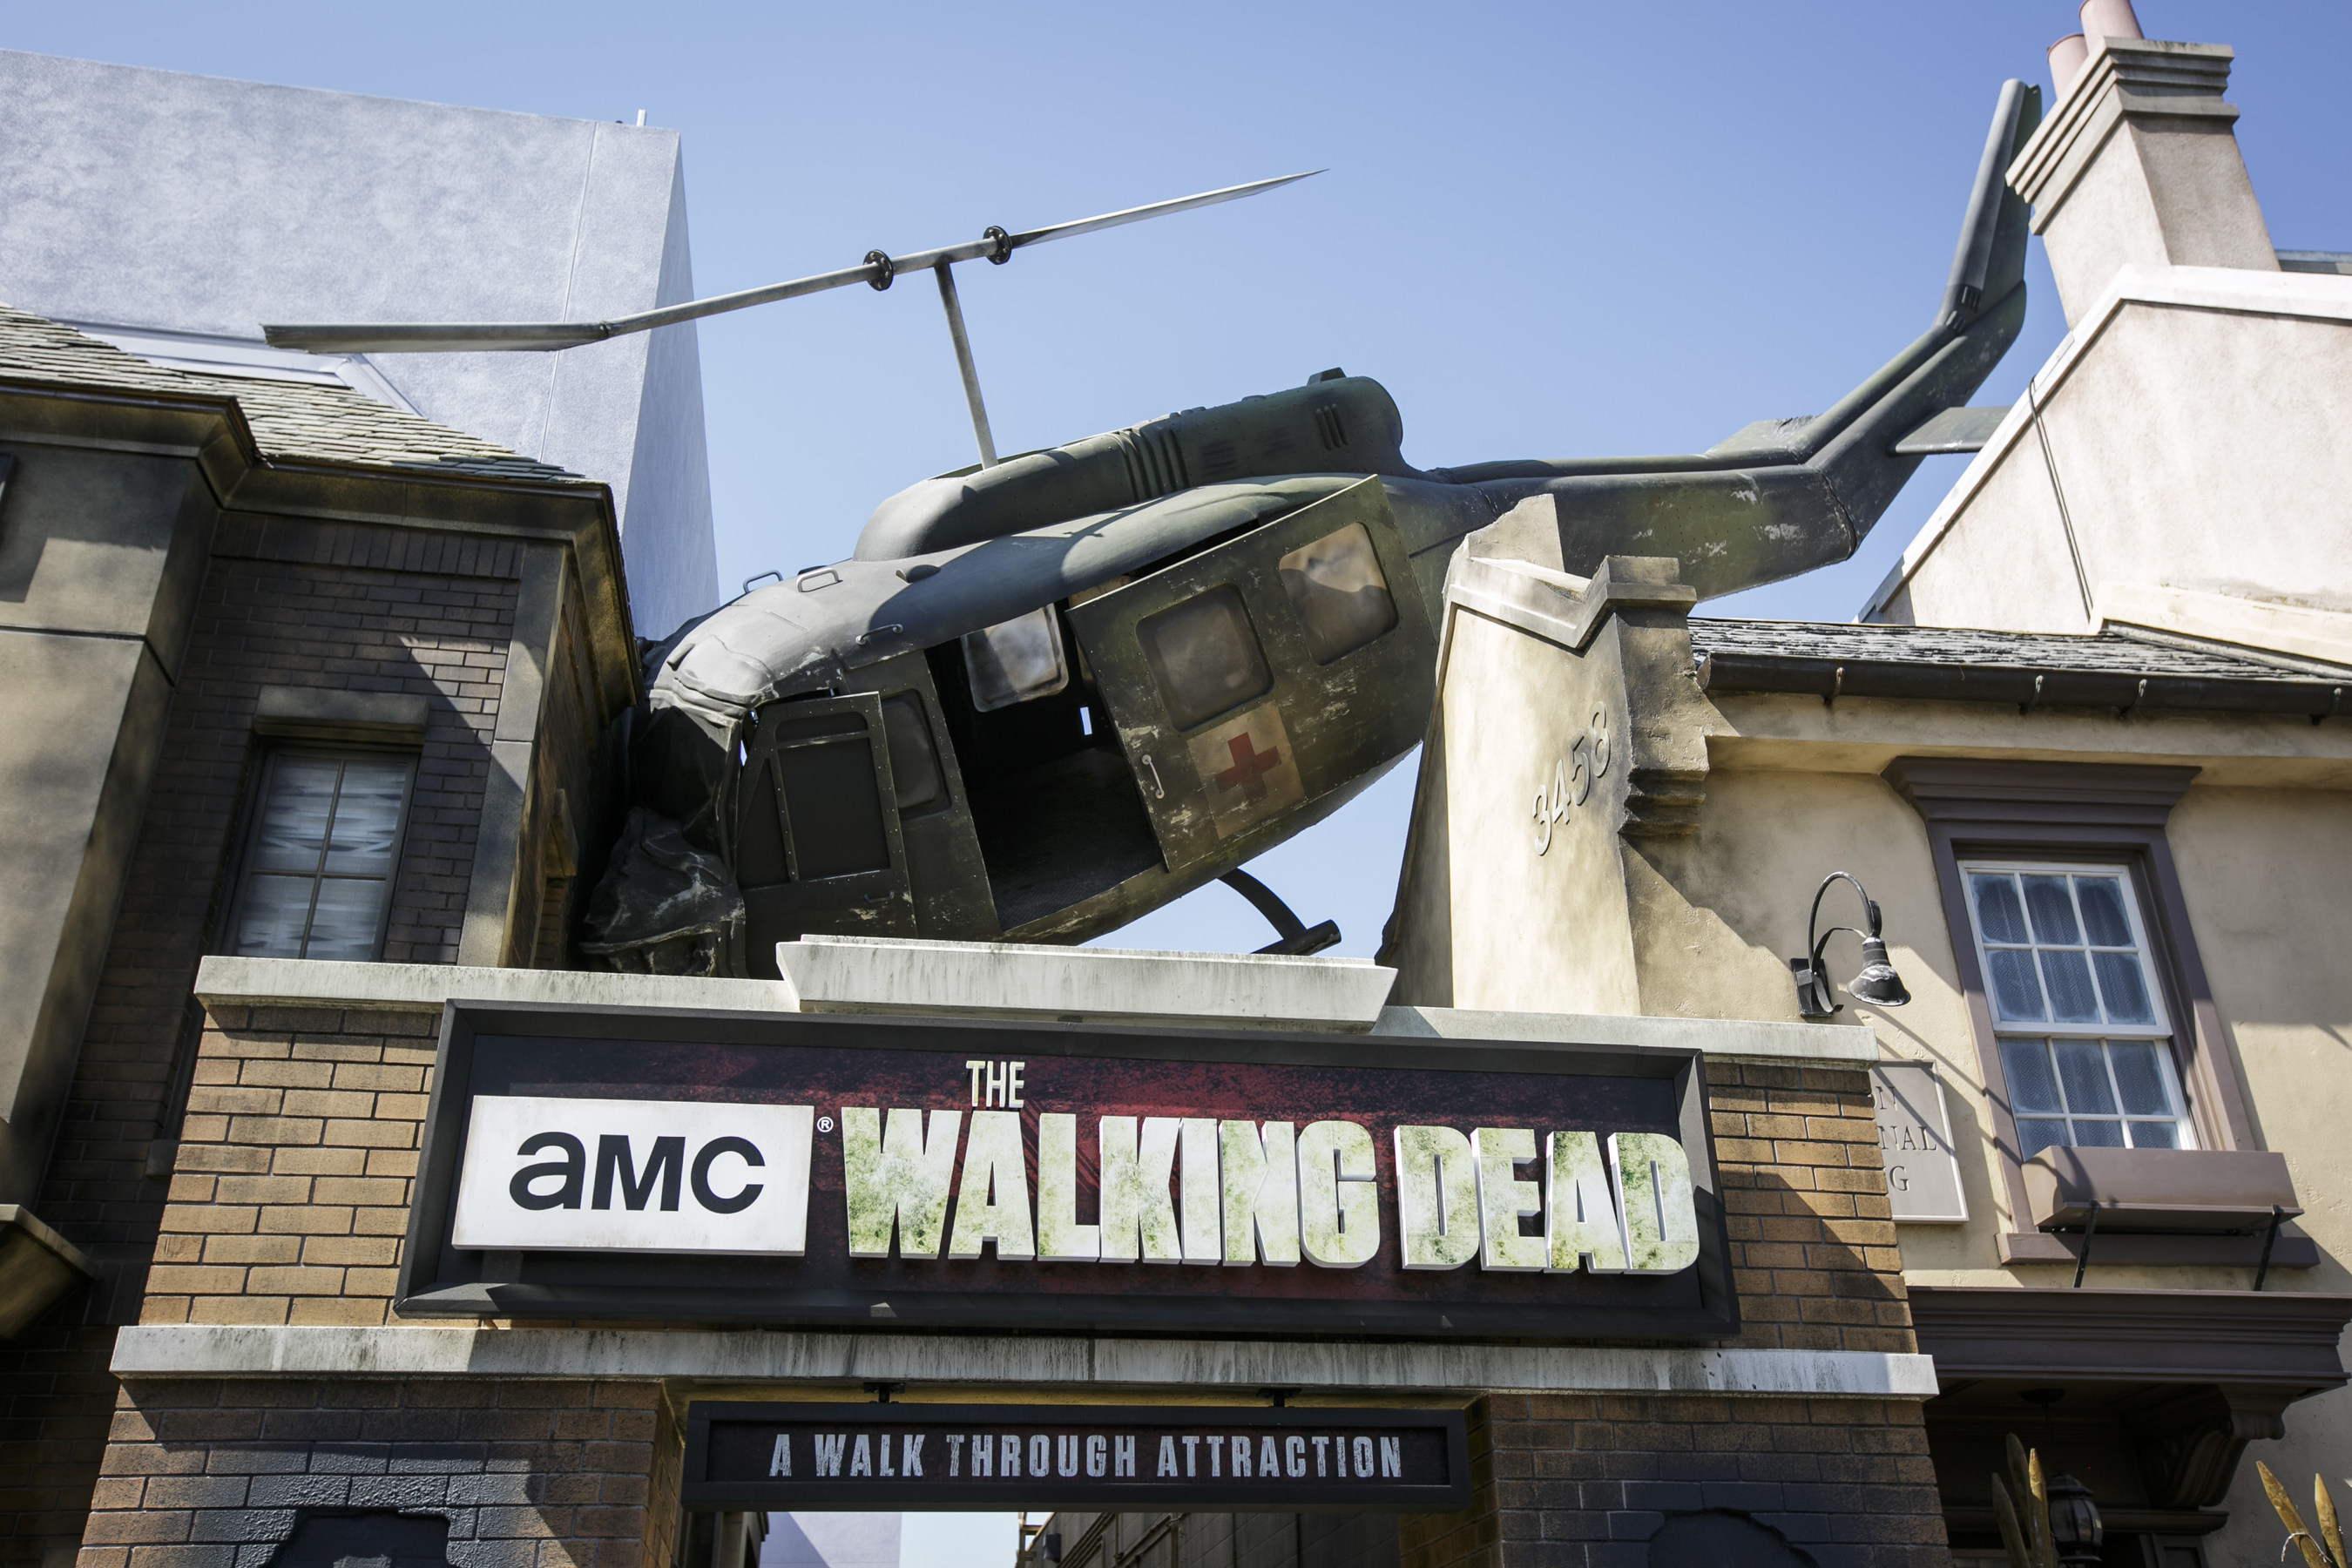 Universal Studios Hollywood Unlocks Its 'Don't Open, Dead Inside' Doors and Debuts its All-New 'The Walking Dead' Permanent Daytime Attraction Based on AMC's Top-Ra